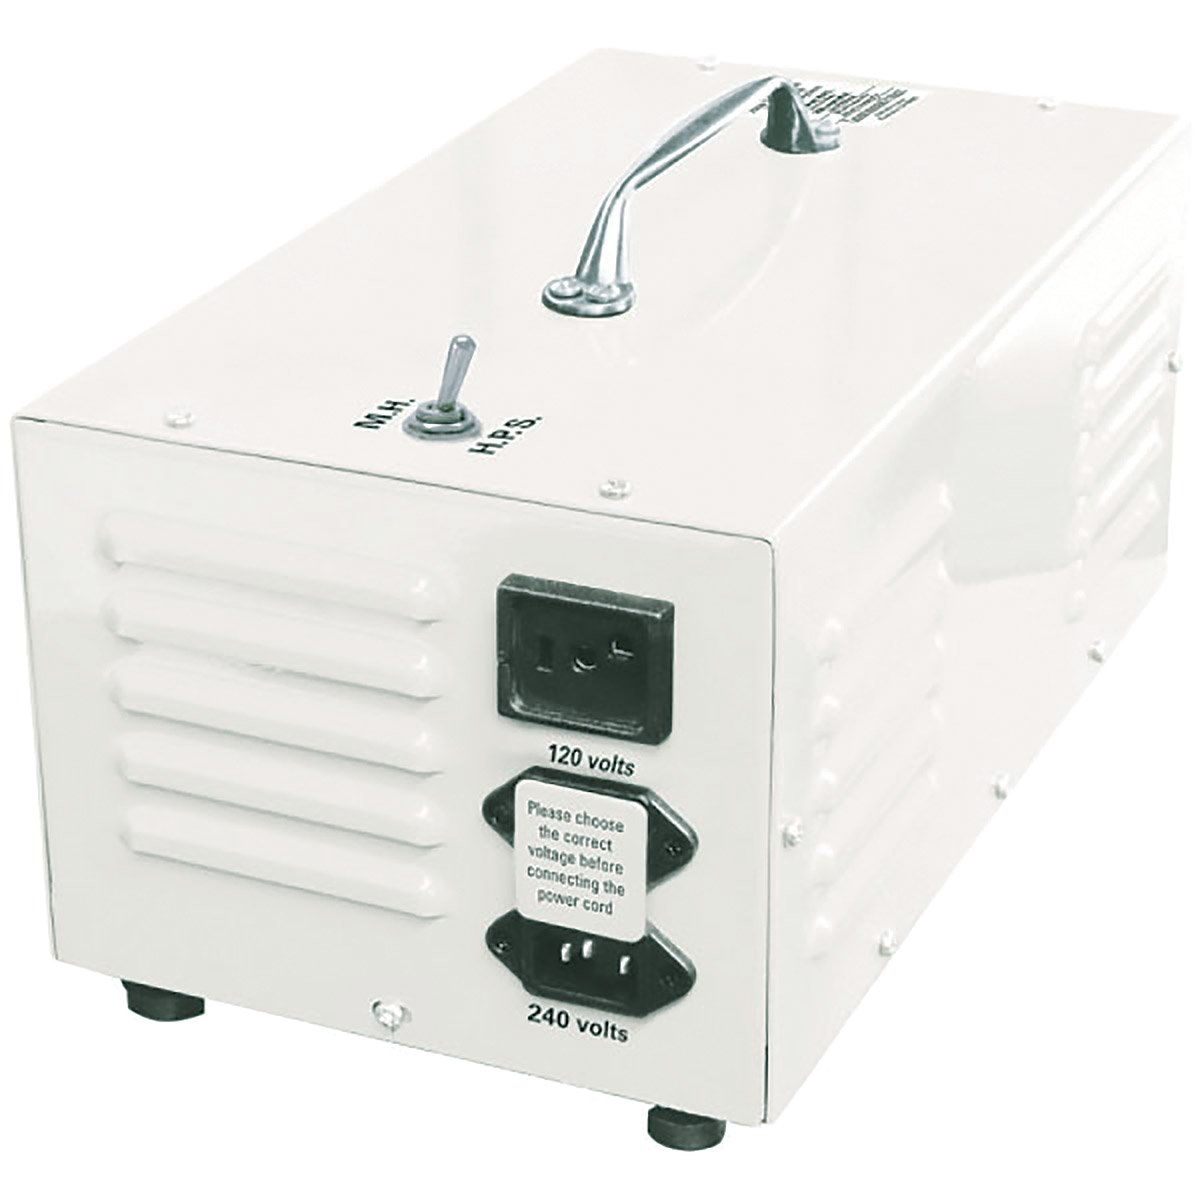 R & M Supply BAL600VL 600W Value Line Switchable Ballast